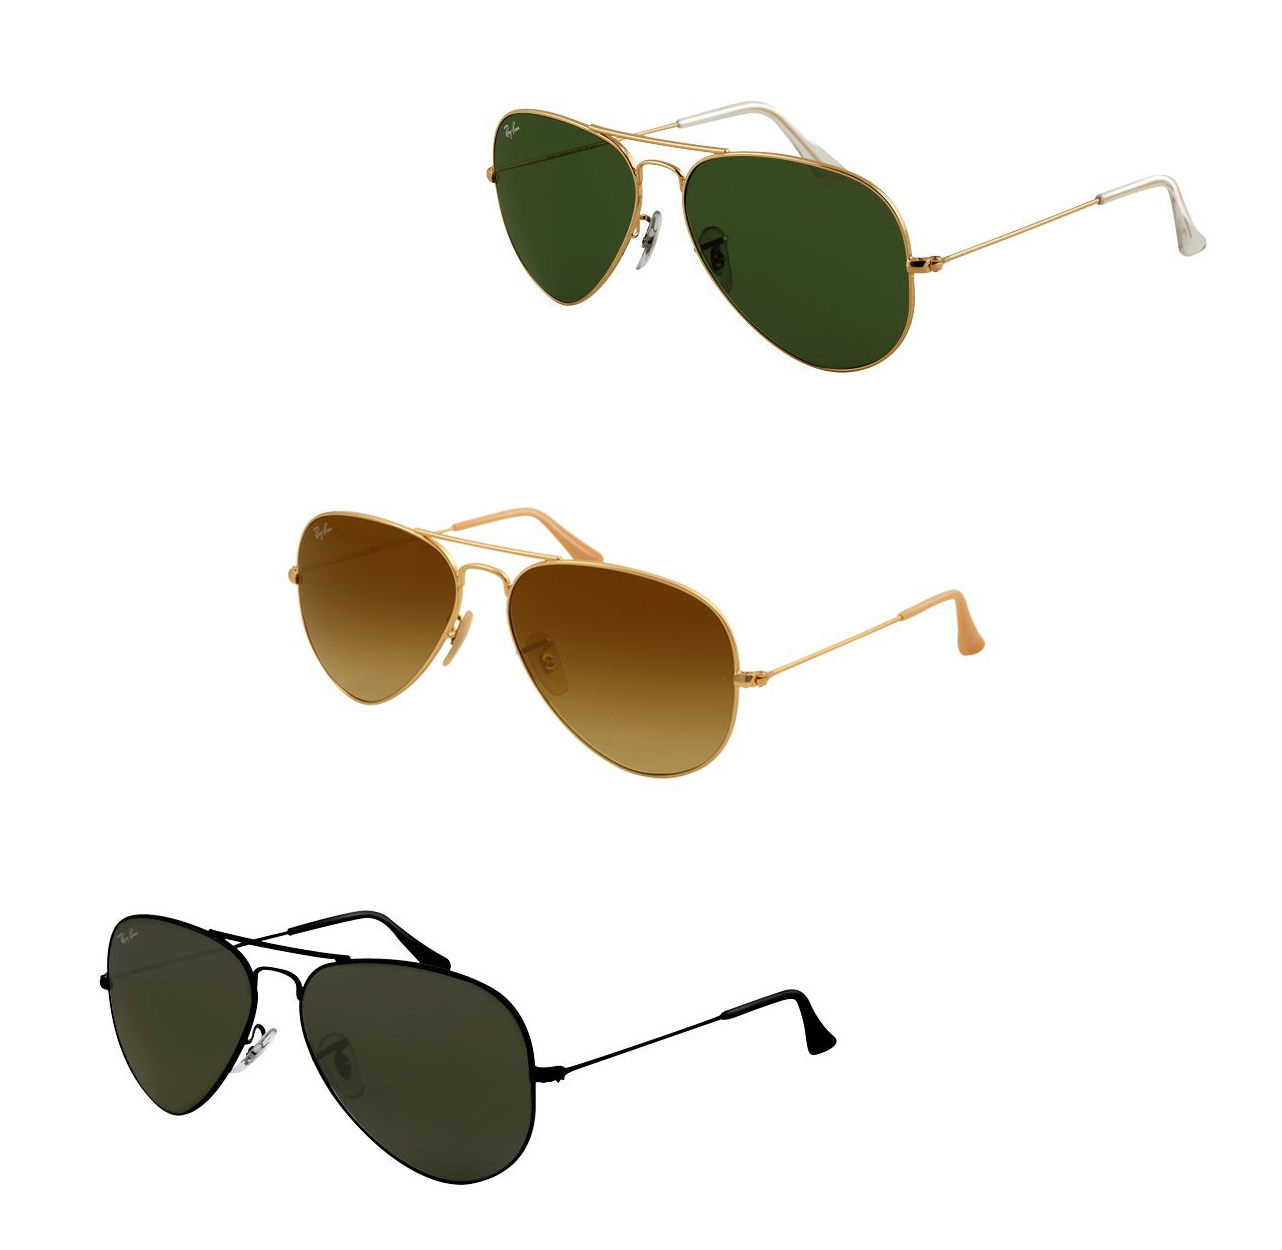 de8b310f30c Ray-Ban RB3025 Aviator Large Metal Sunglasses - 86 Models